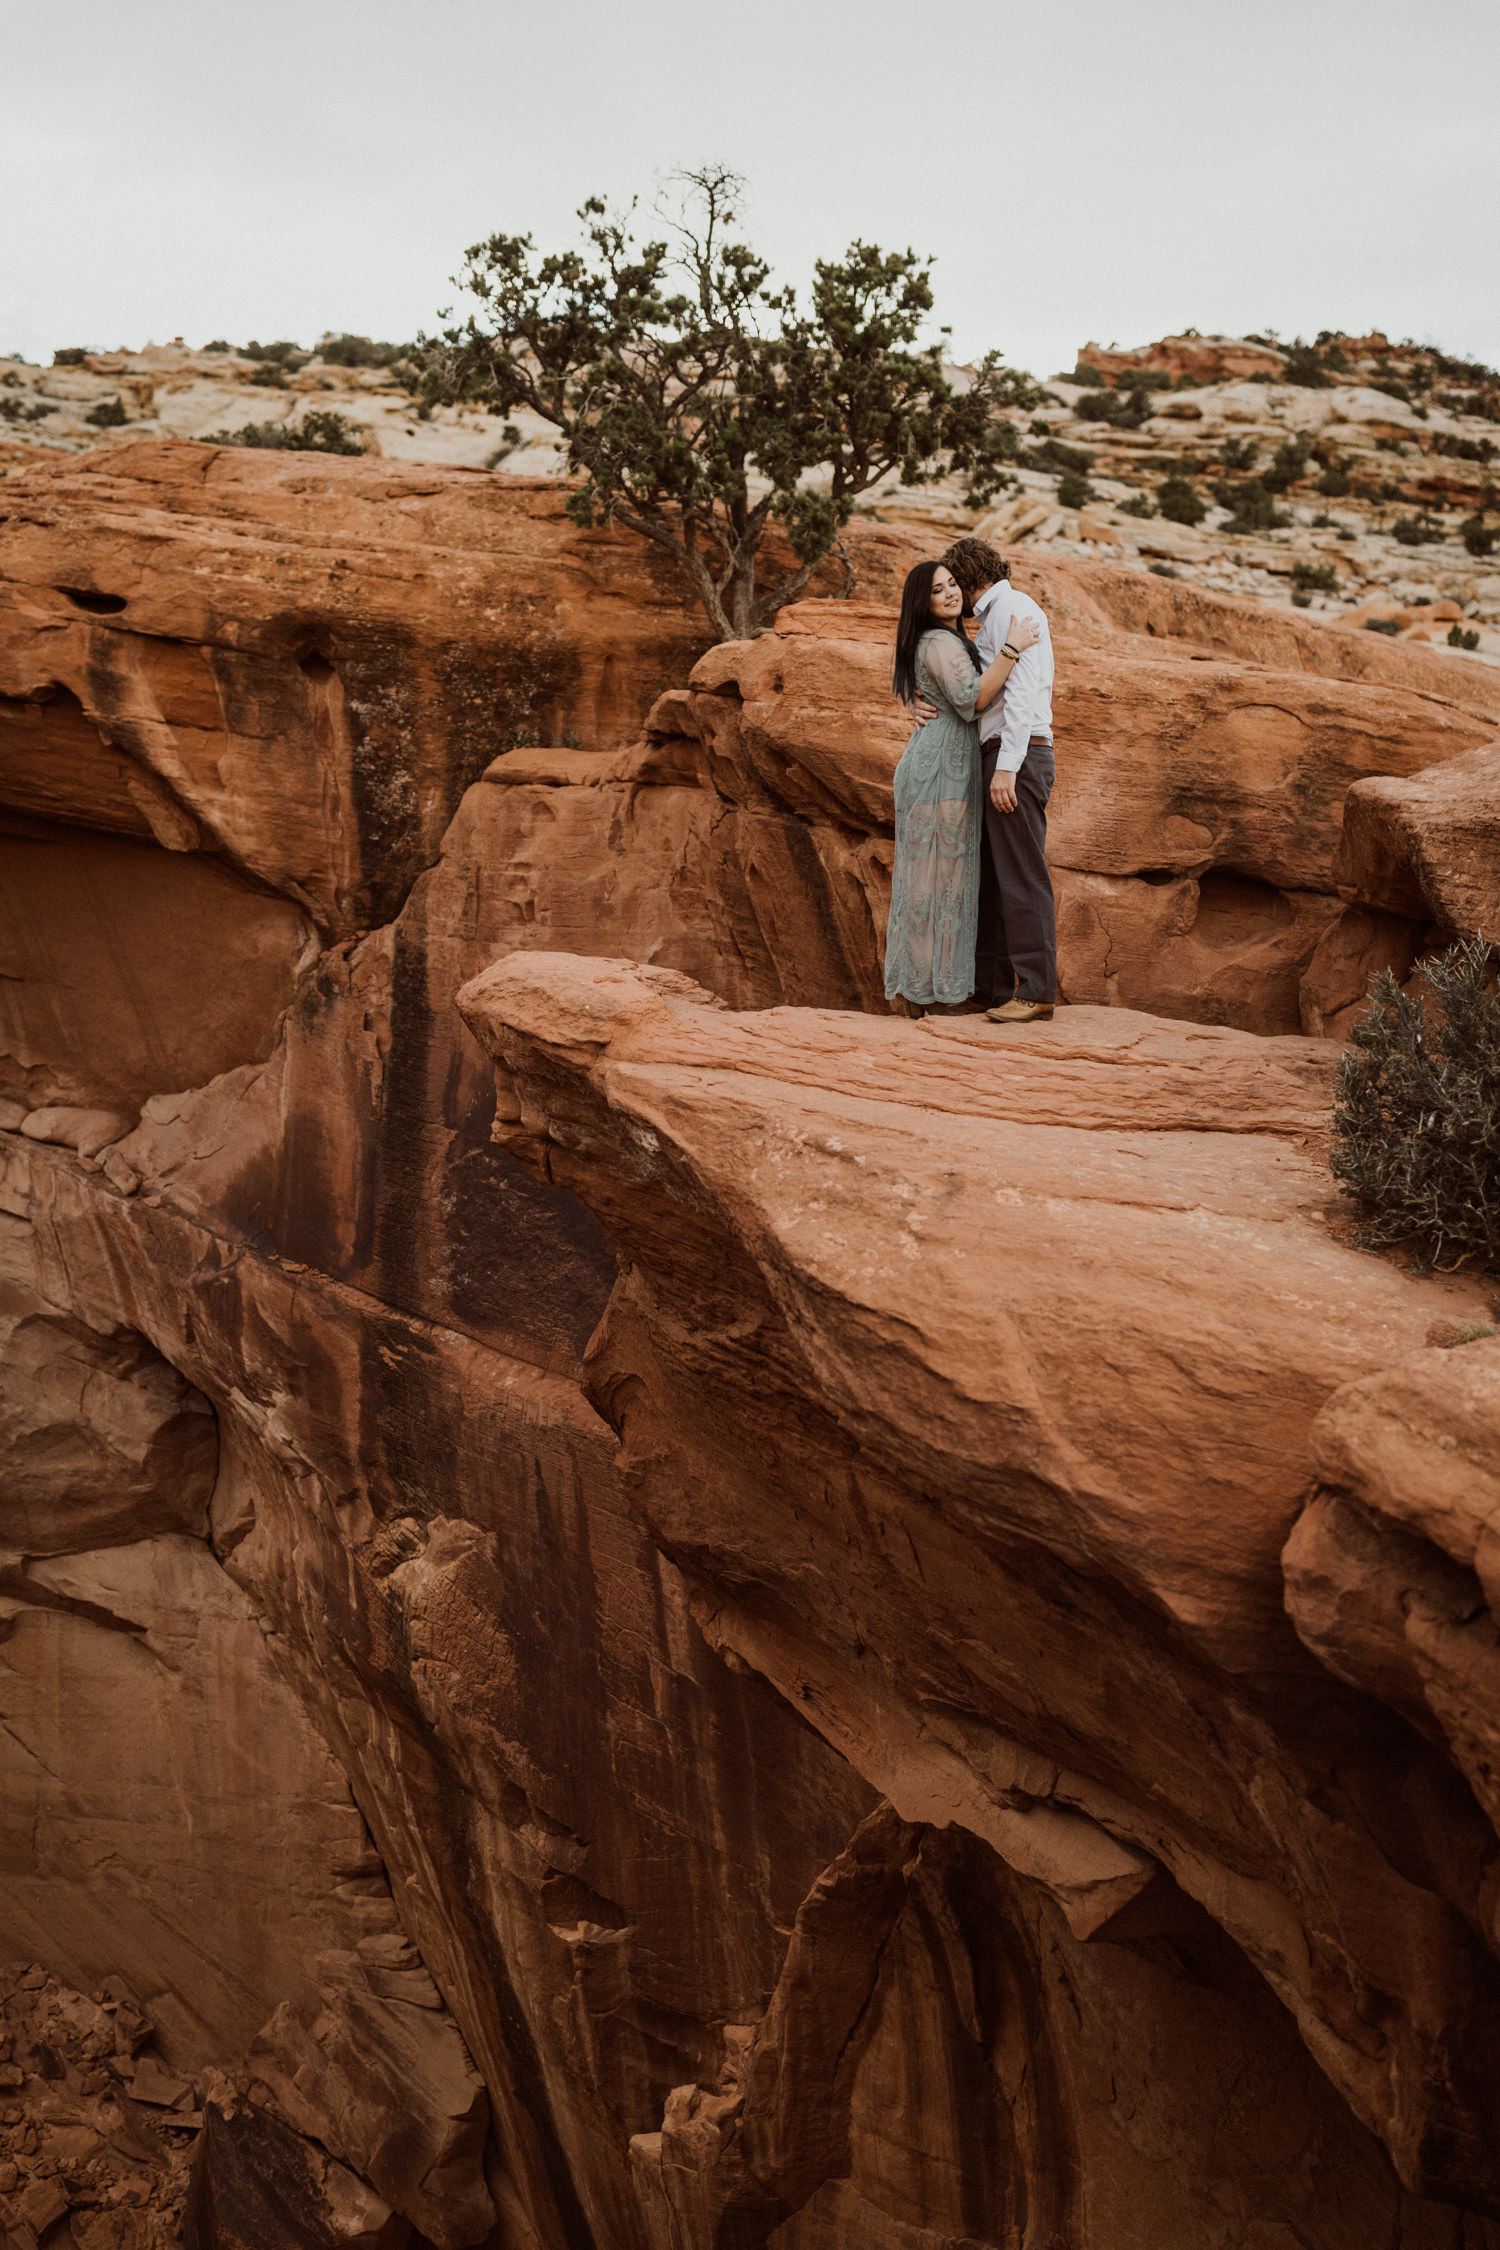 capitol-reef-national-park-engagements-41.jpg